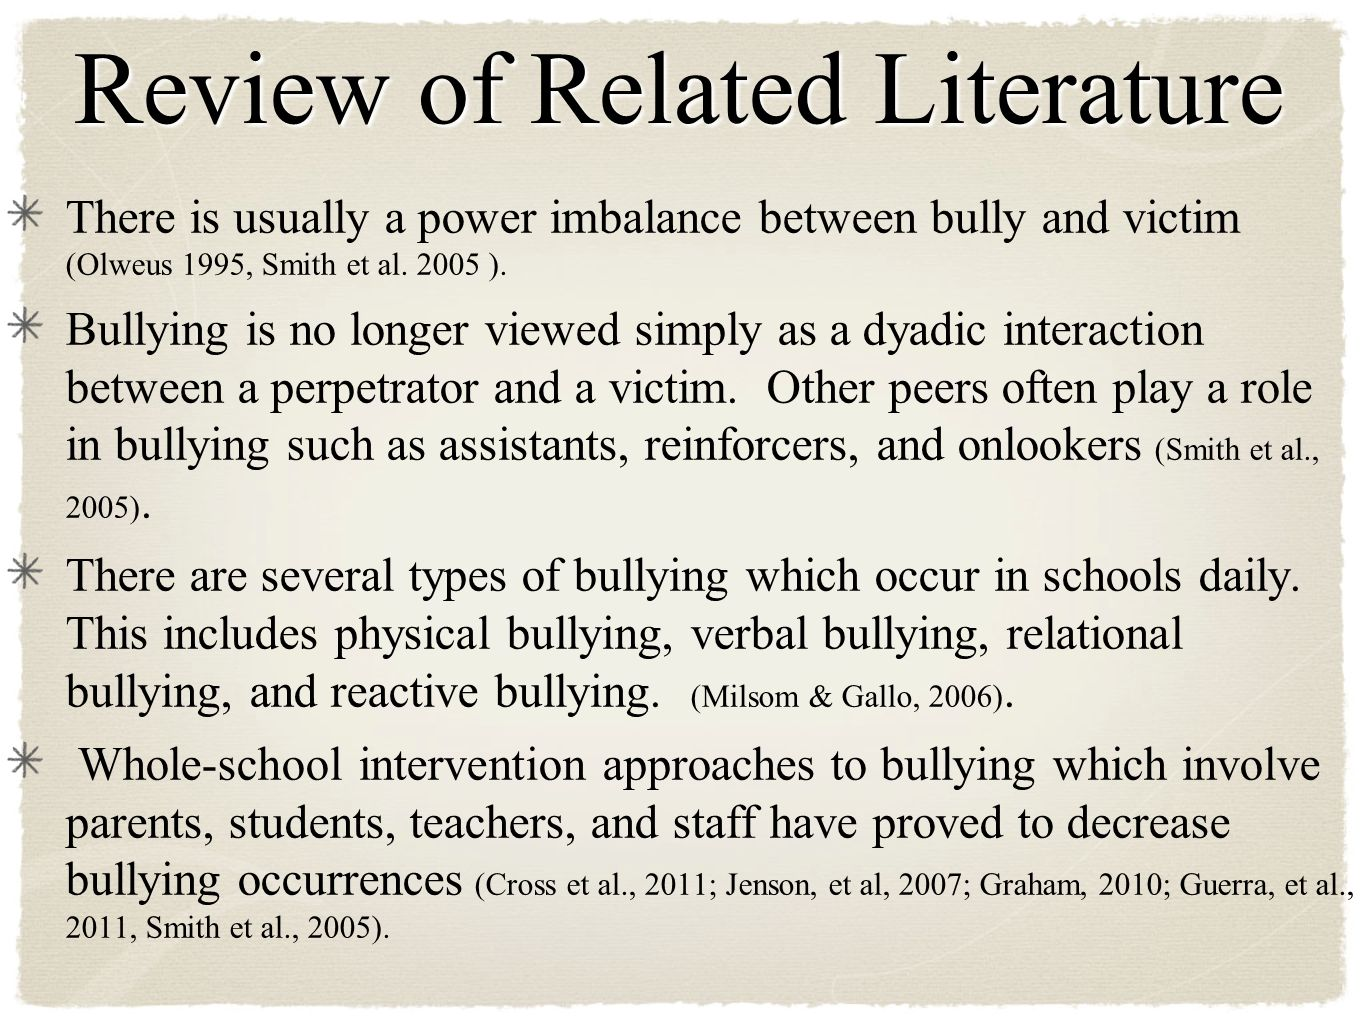 review related literature about bullying An integrative literature review    is a form of research that reviews, critiques, and synthesizes representative literature on a topic in an integrated way such that new frameworks and perspectives on the topic are generated (p 356.